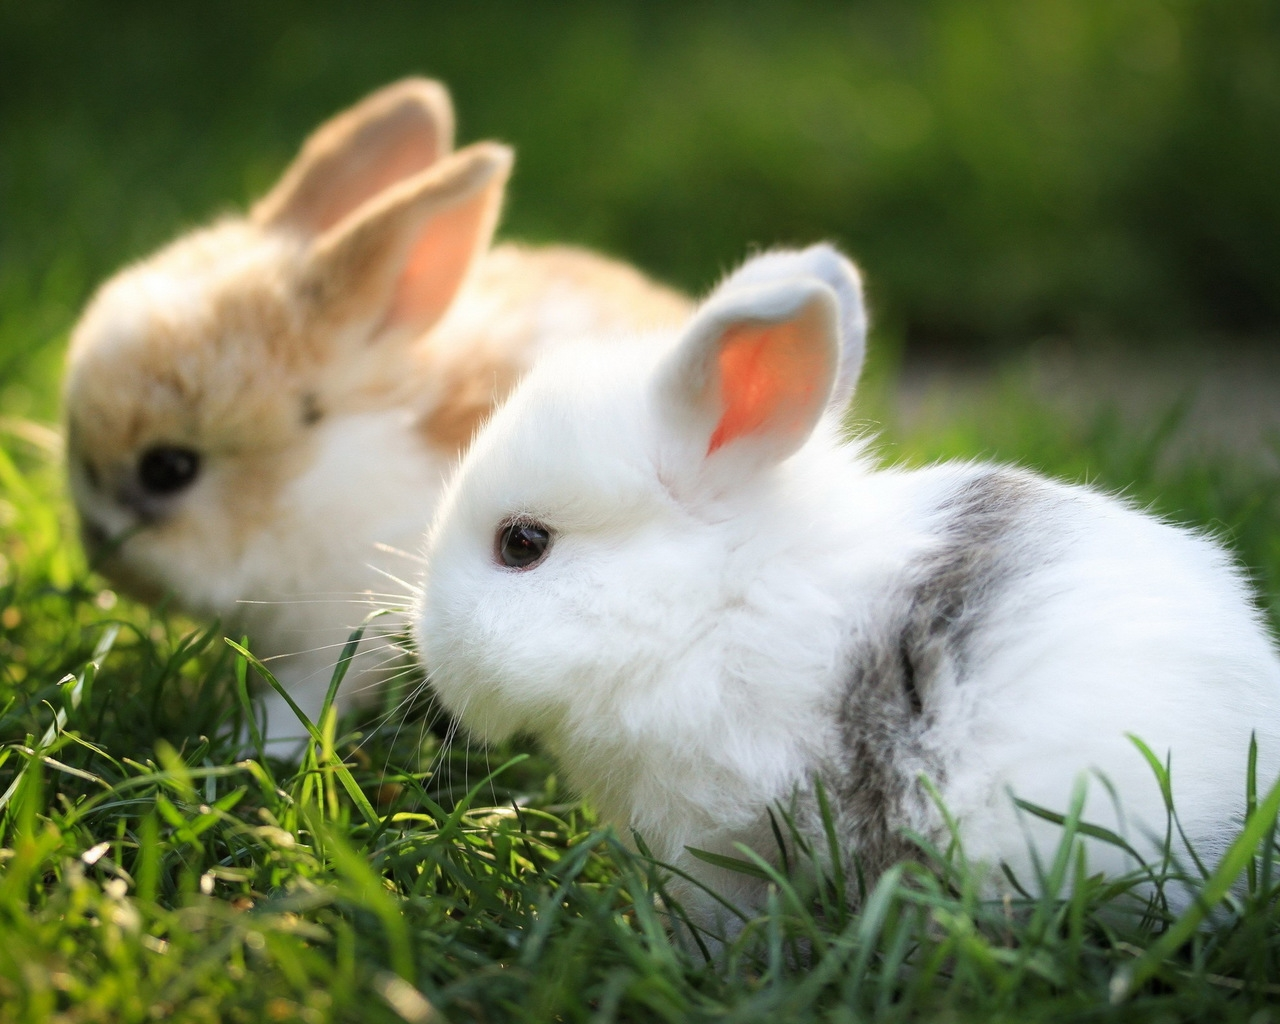 Funny and cute rabbits 05